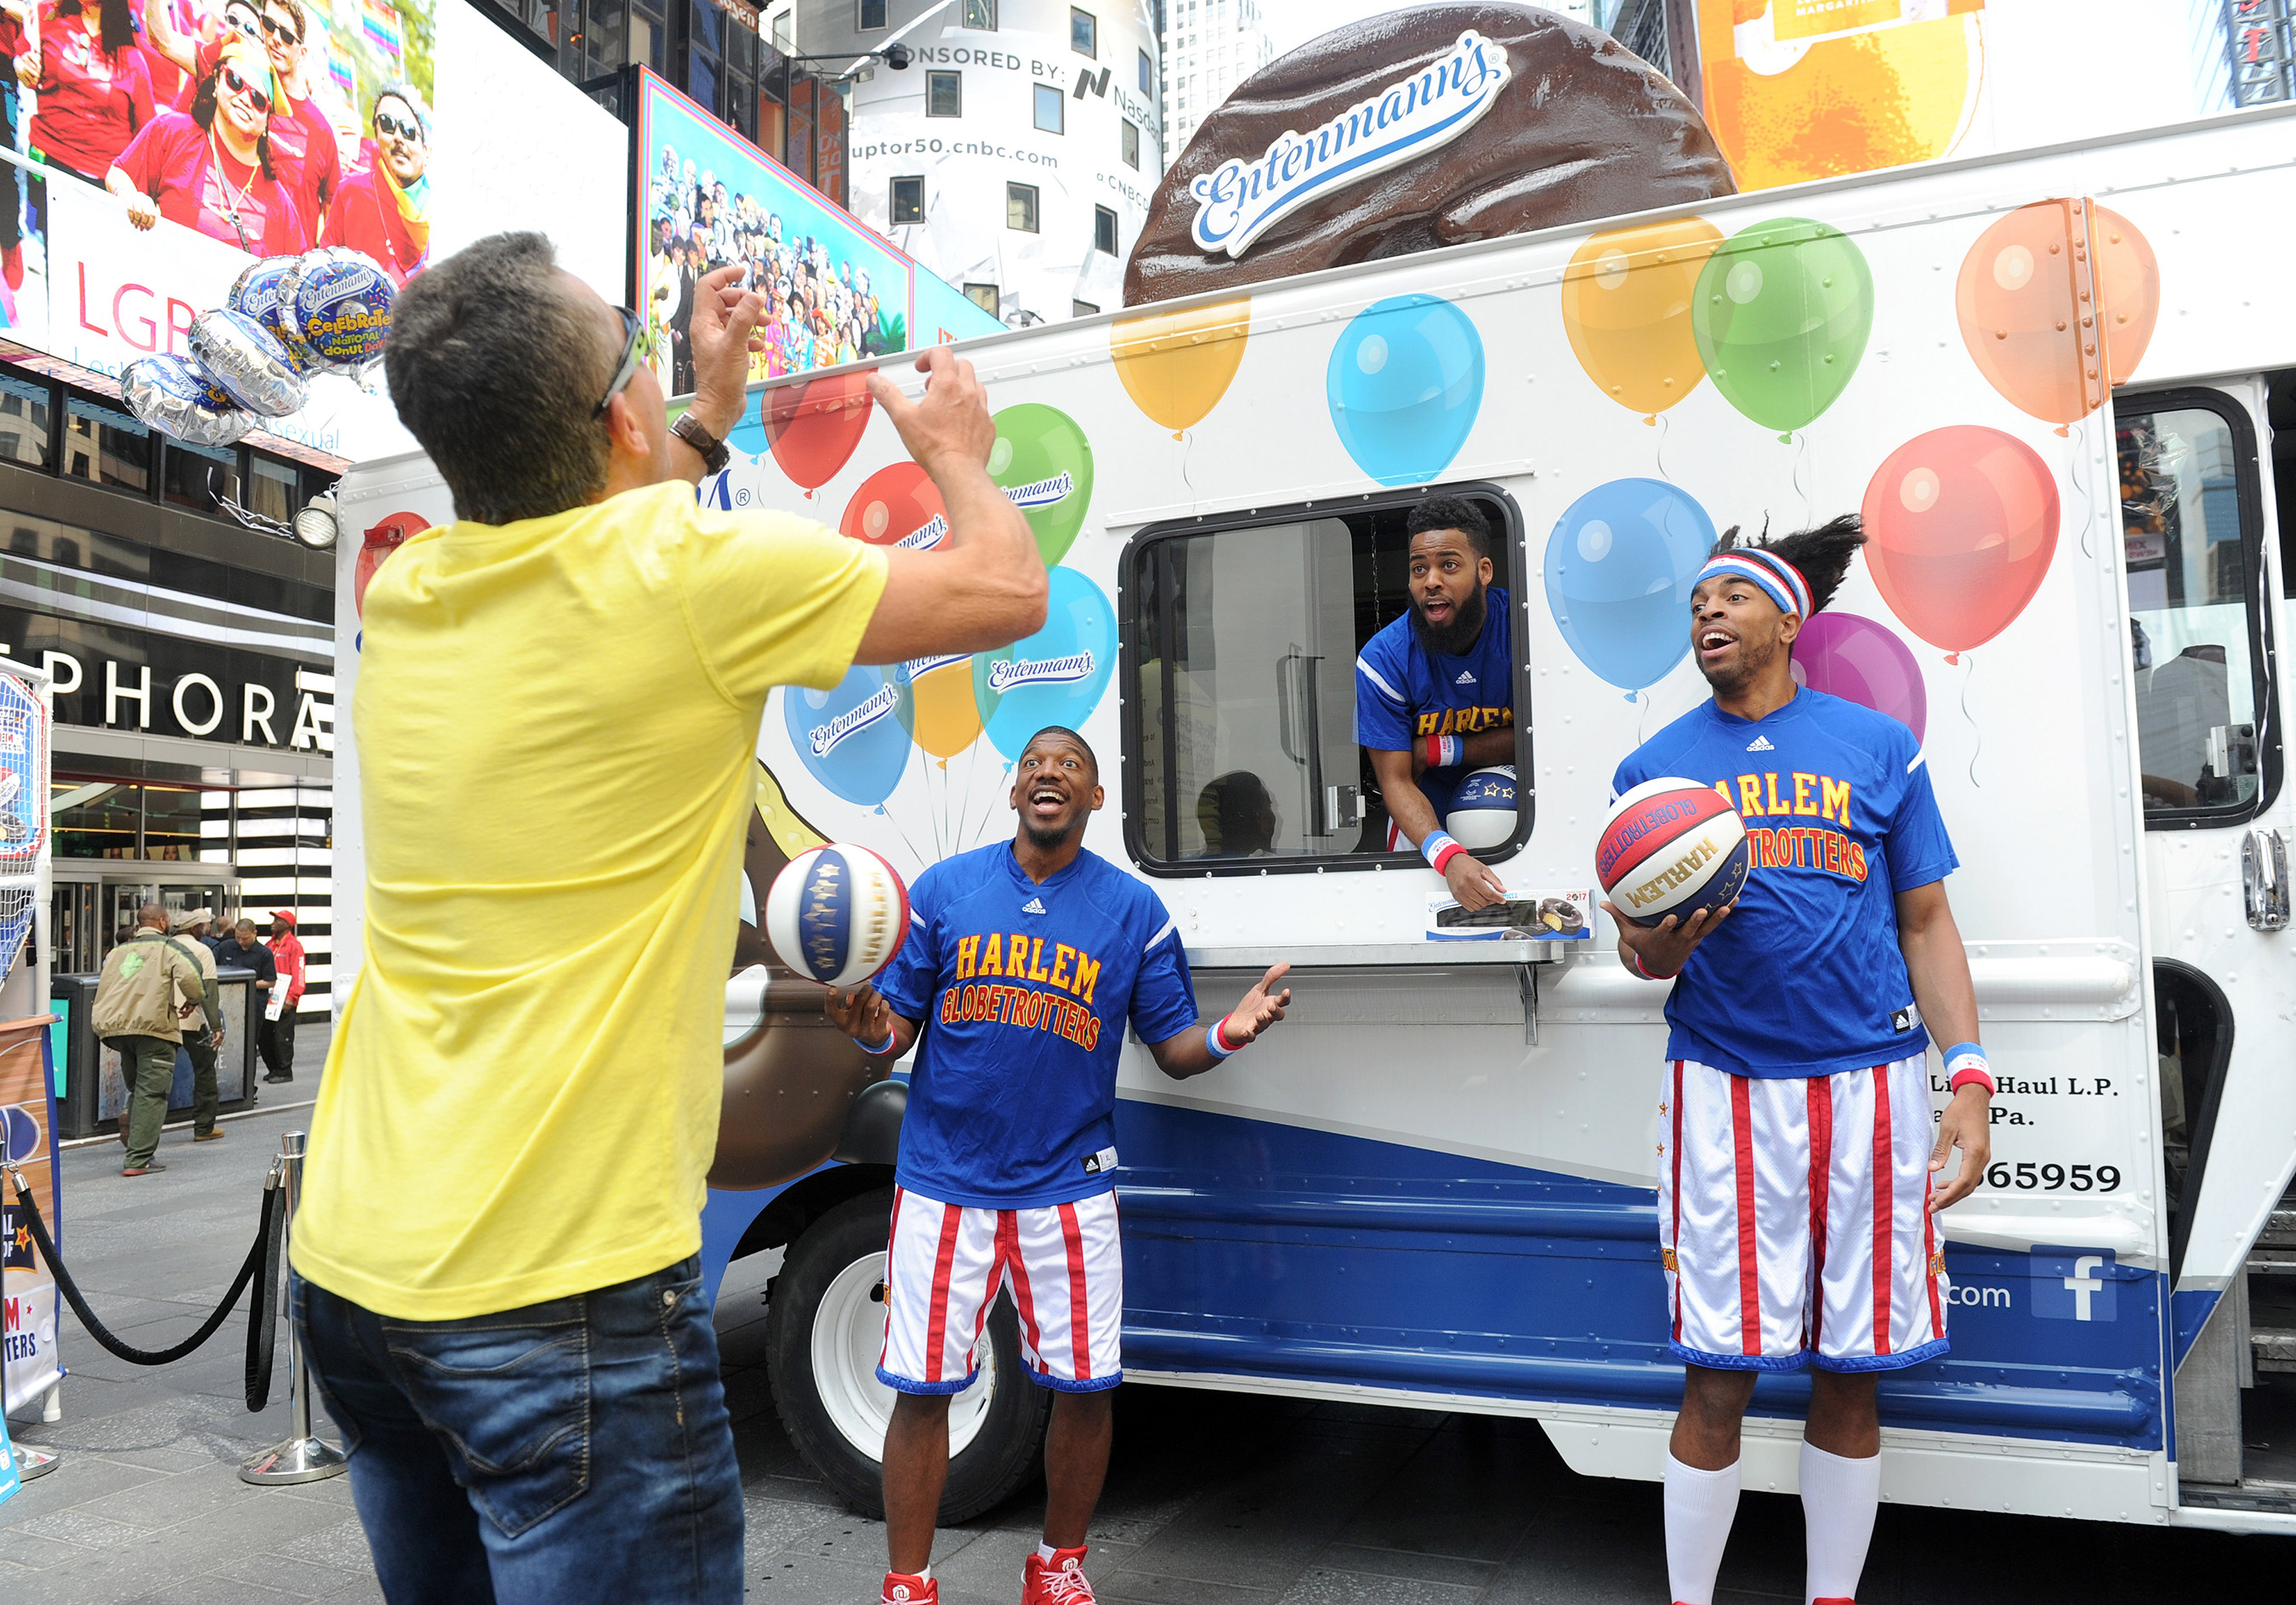 The world famous Harlem Globetrotters toss Entenmann's donuts to fans in celebration of National Donut Day, Friday, June 2, 2017, in New York's Times Square. Over 40,000 Entenmann's Rich Frosted Donuts were handed out to fans across NYC.